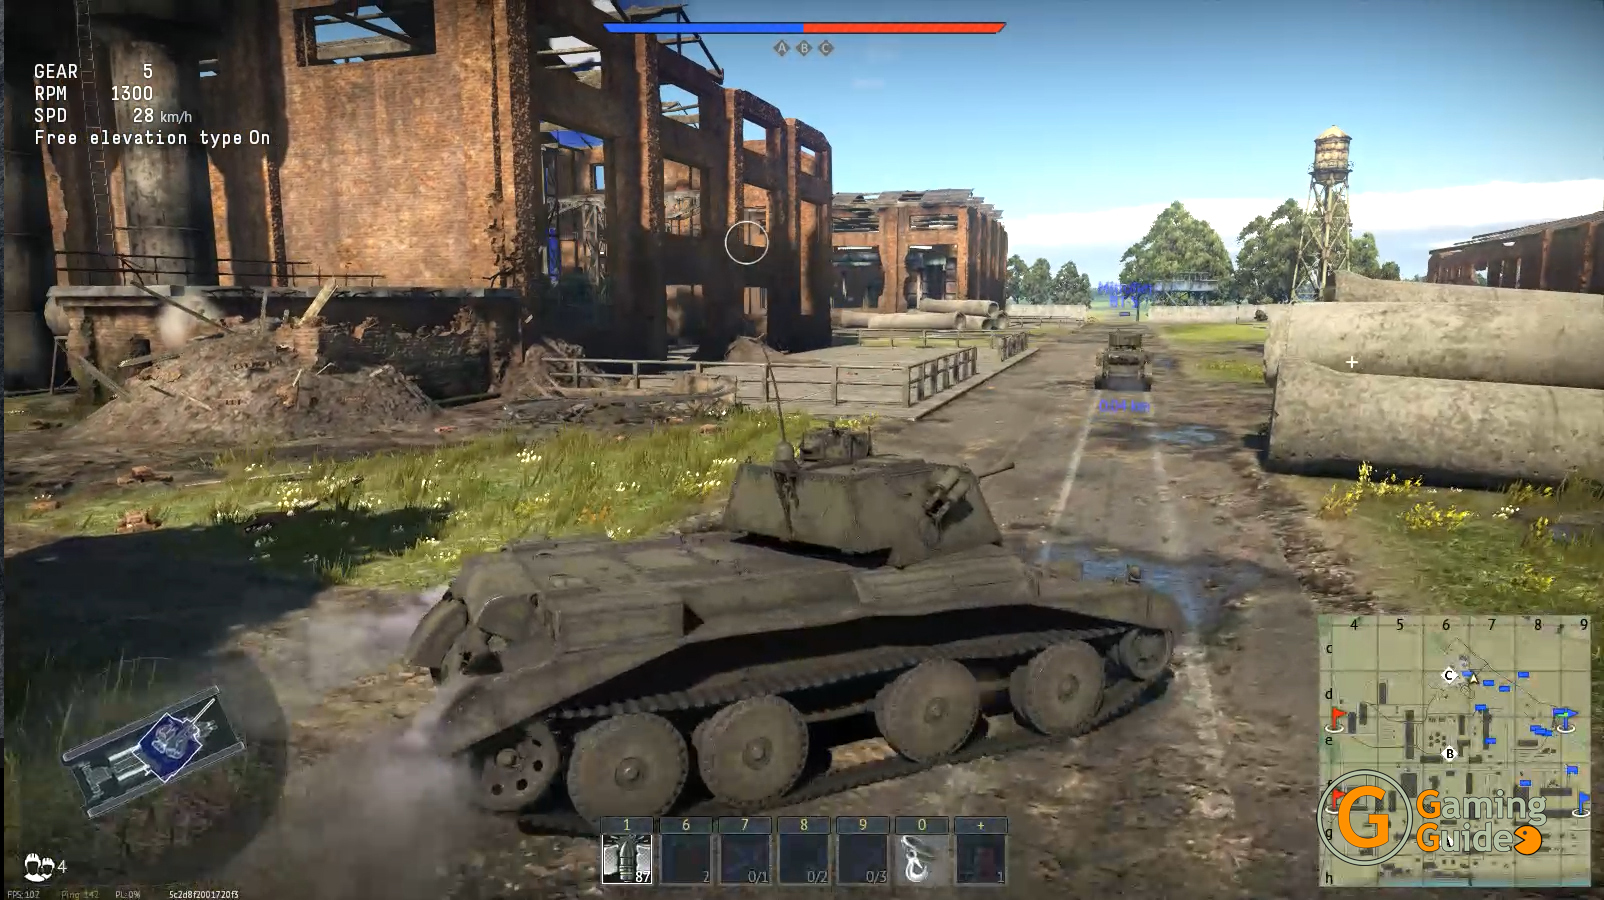 World of Tanks Vs War Thunder - Which is the Right Game for